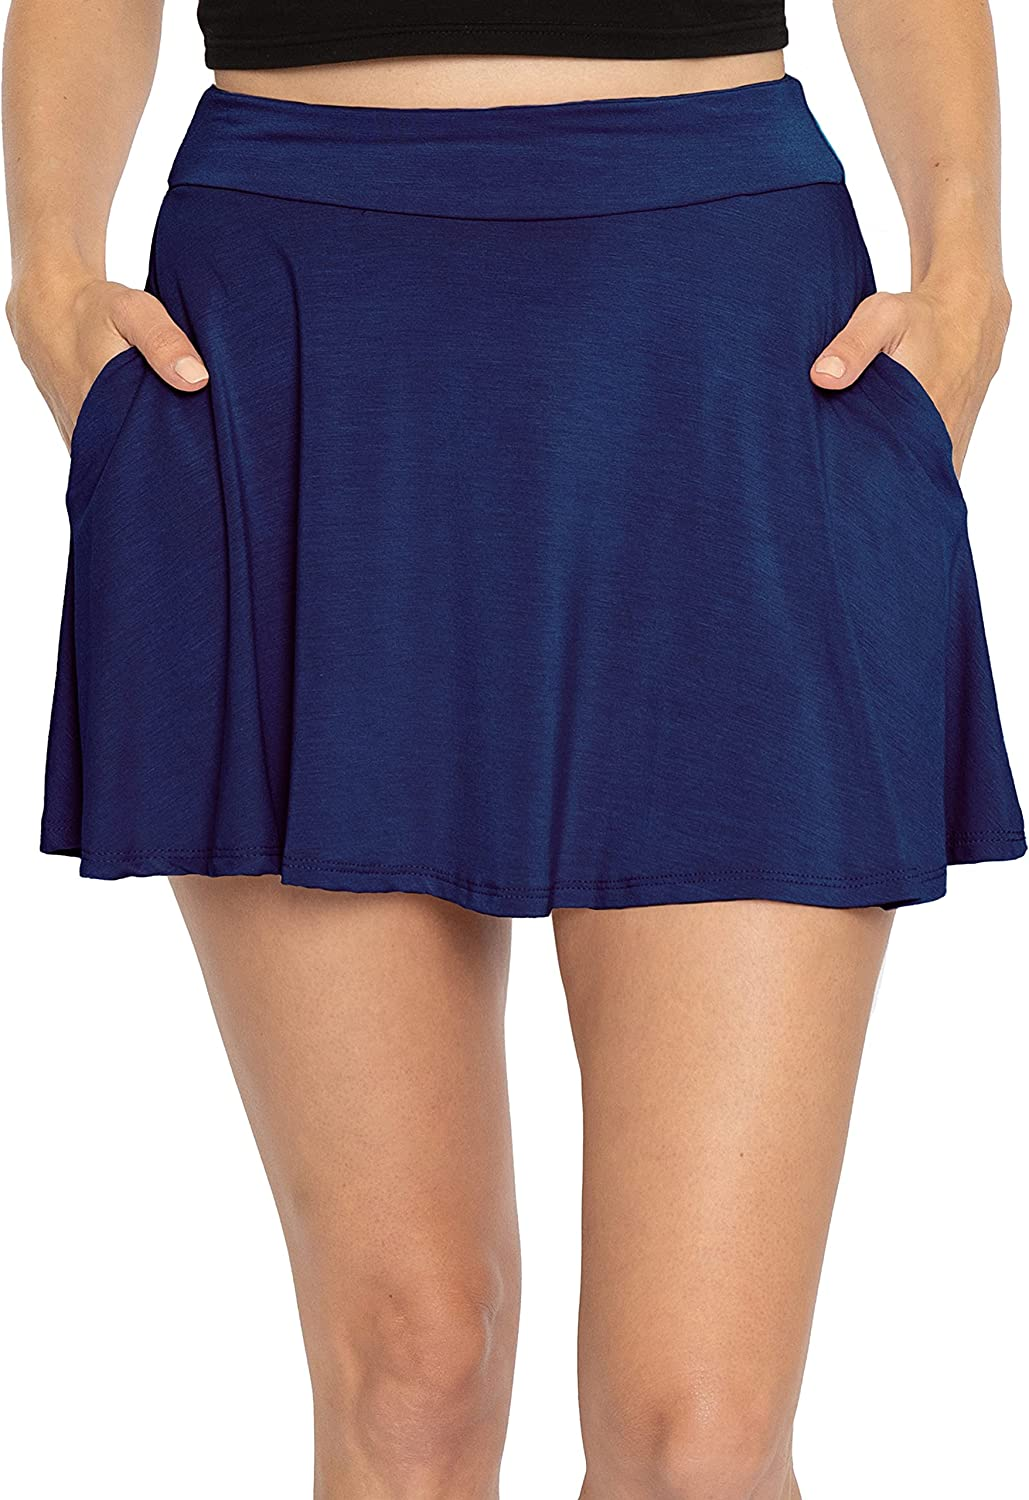 Premium Stretch Rayon Skater Skirt with Pockets   Women's   Made in U.S.A.